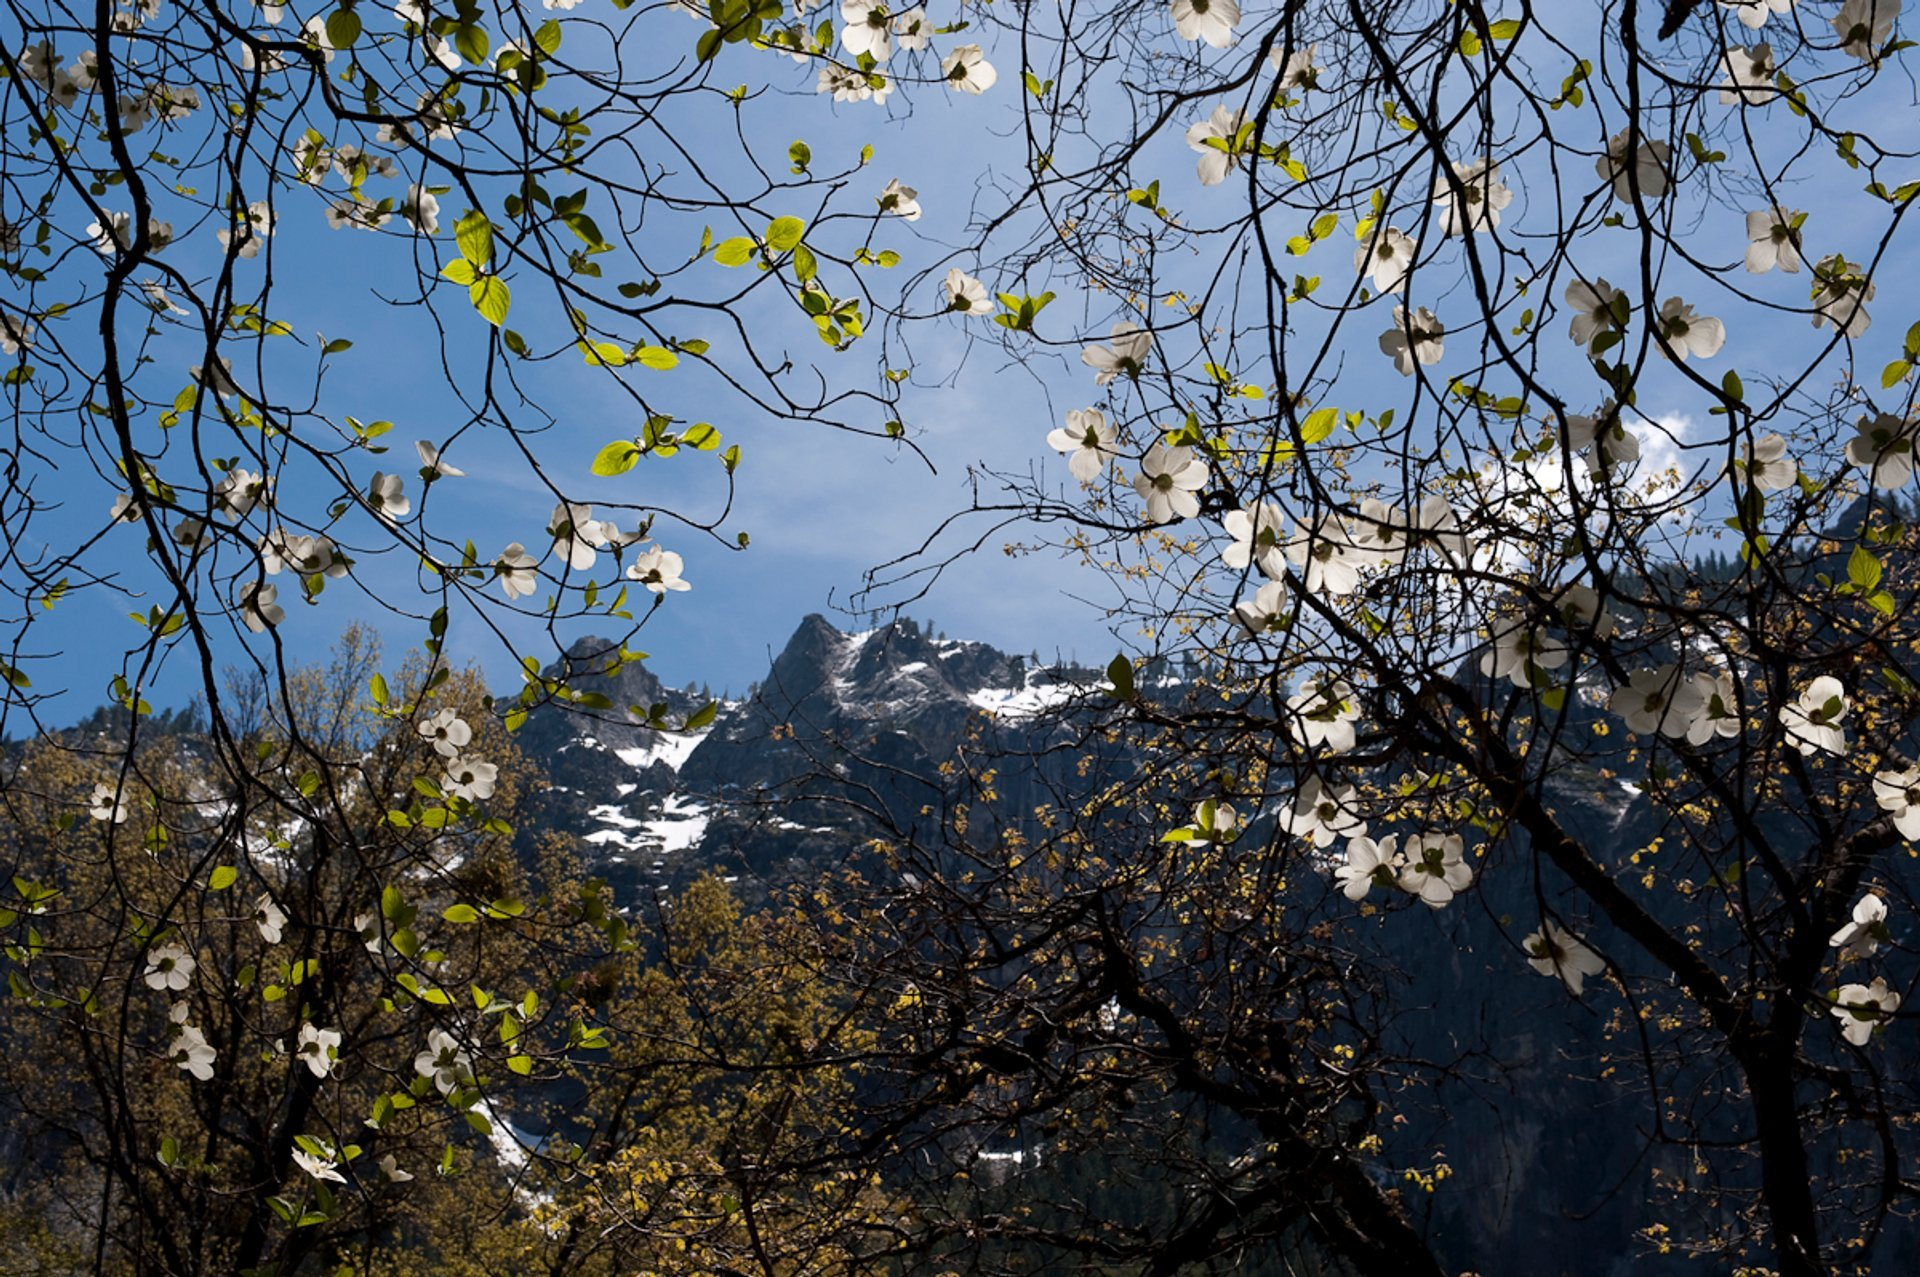 Dogwoods in Bloom in Yosemite - Best Season 2020